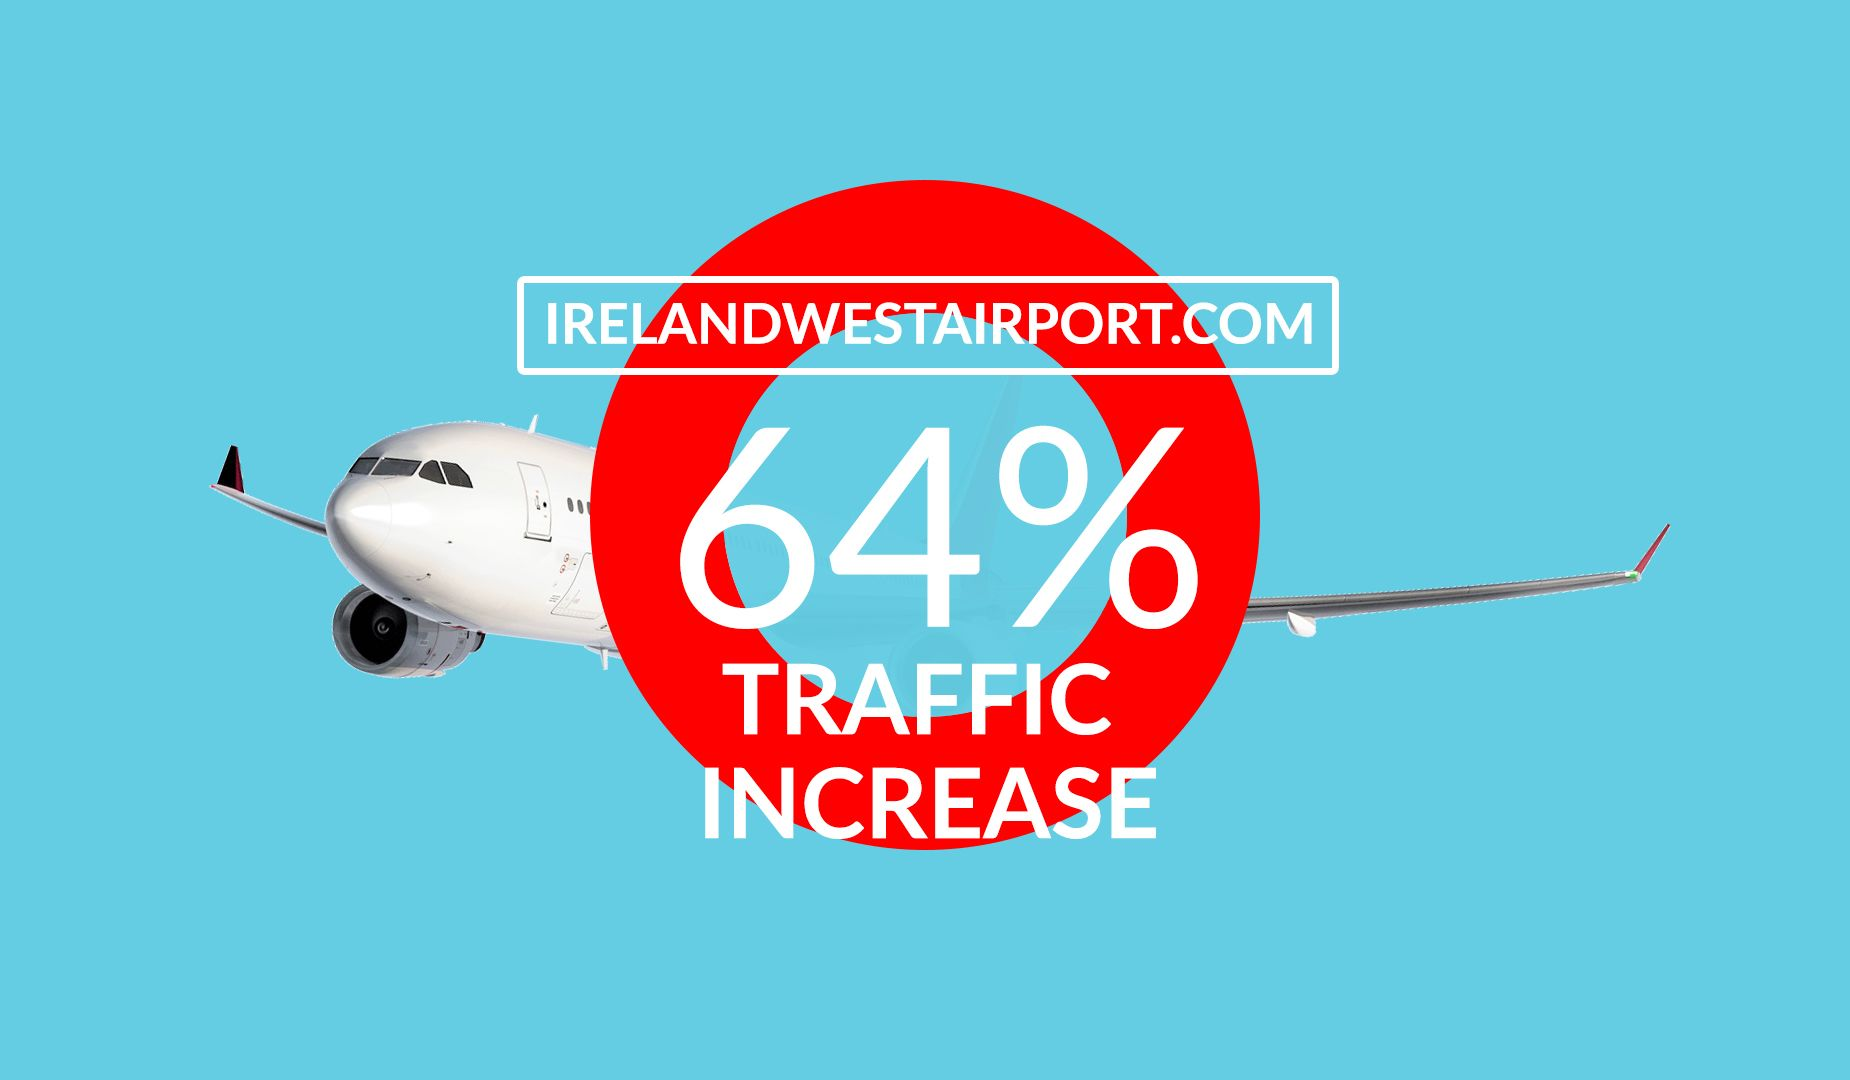 airport seo ryco marketing dublin